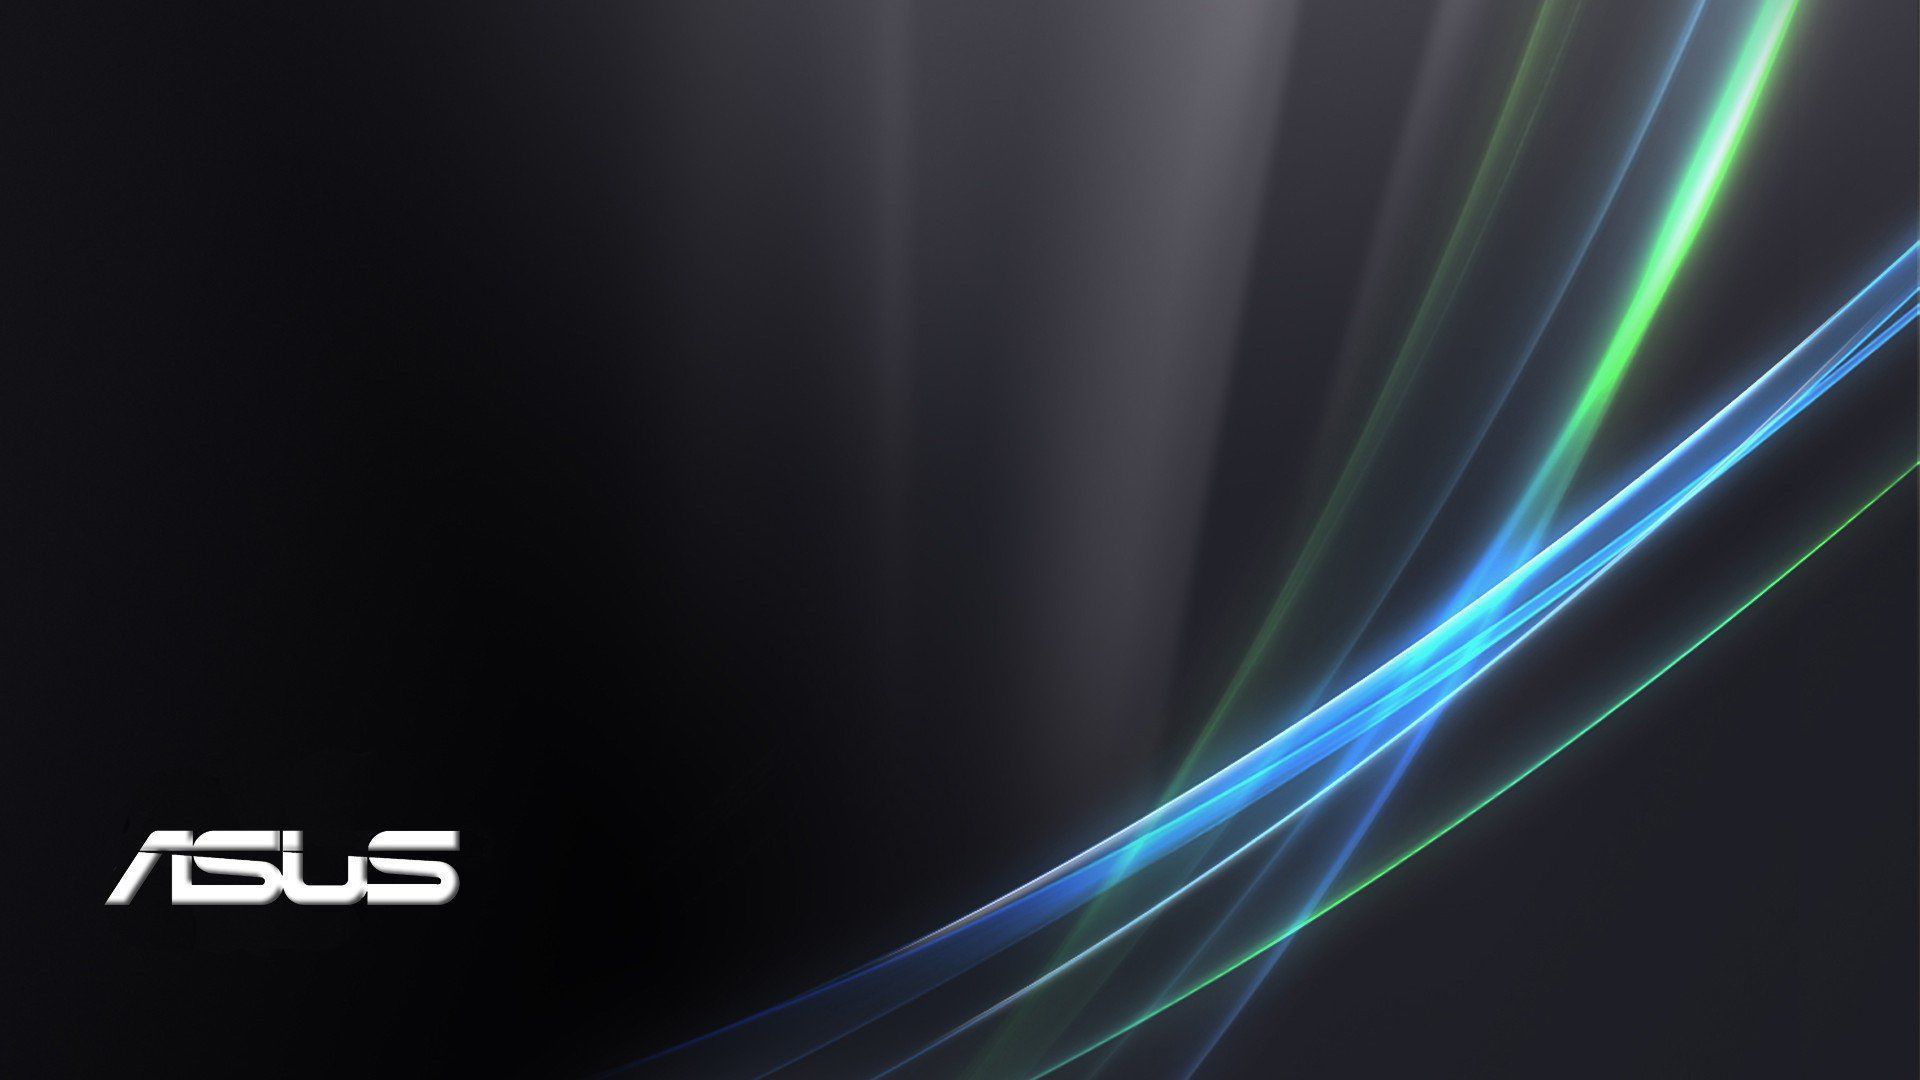 Asus Background